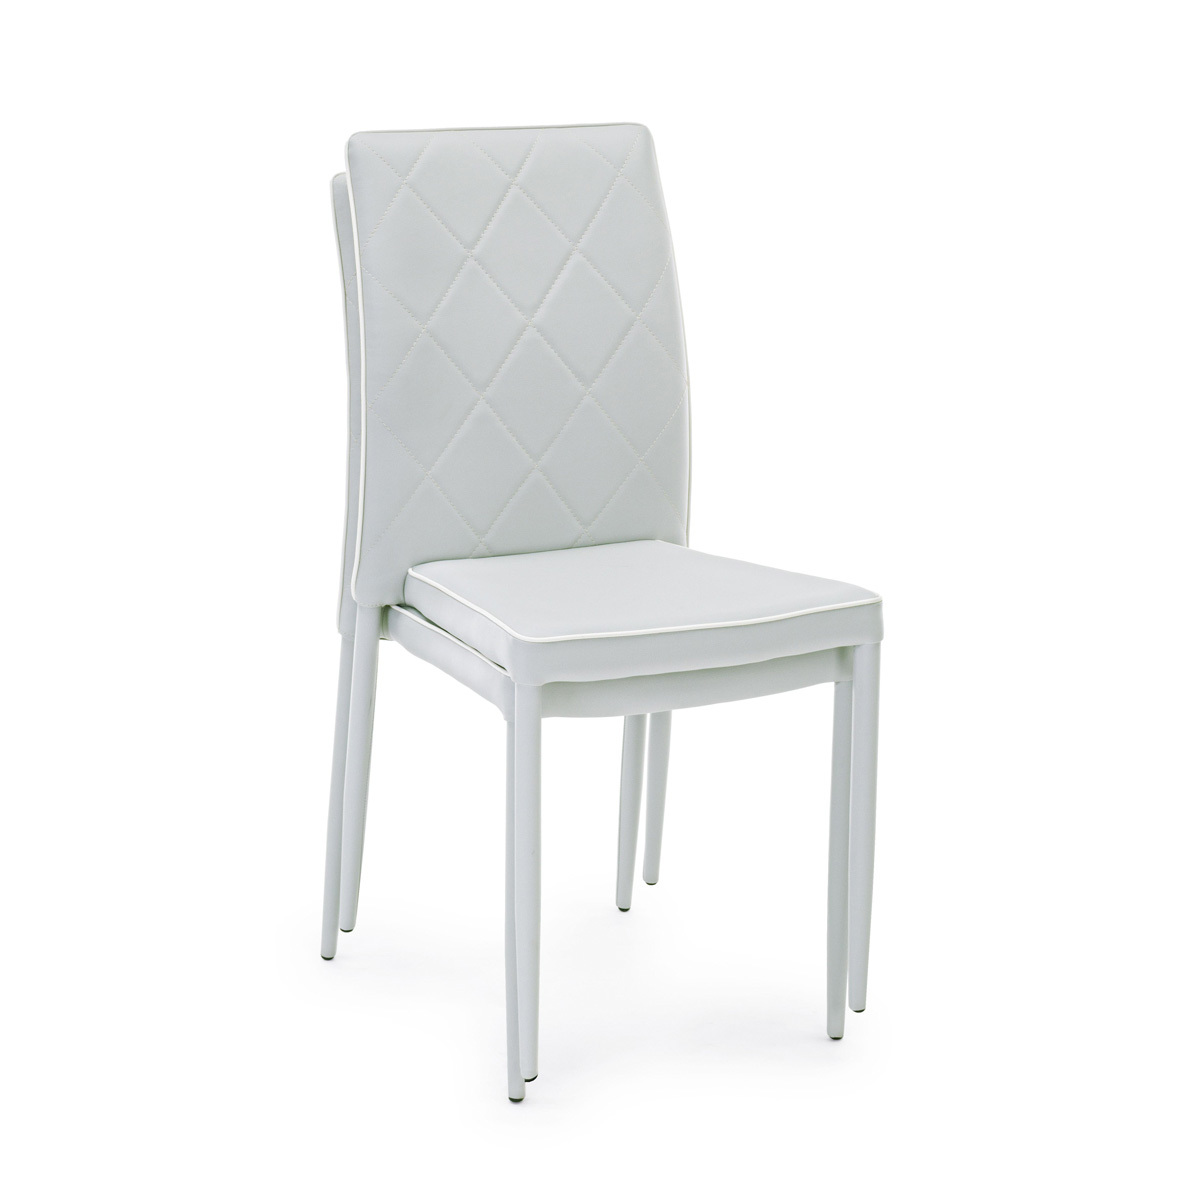 Photos 6: Bizzotto Chair covered in eco-leather - gray 0730787